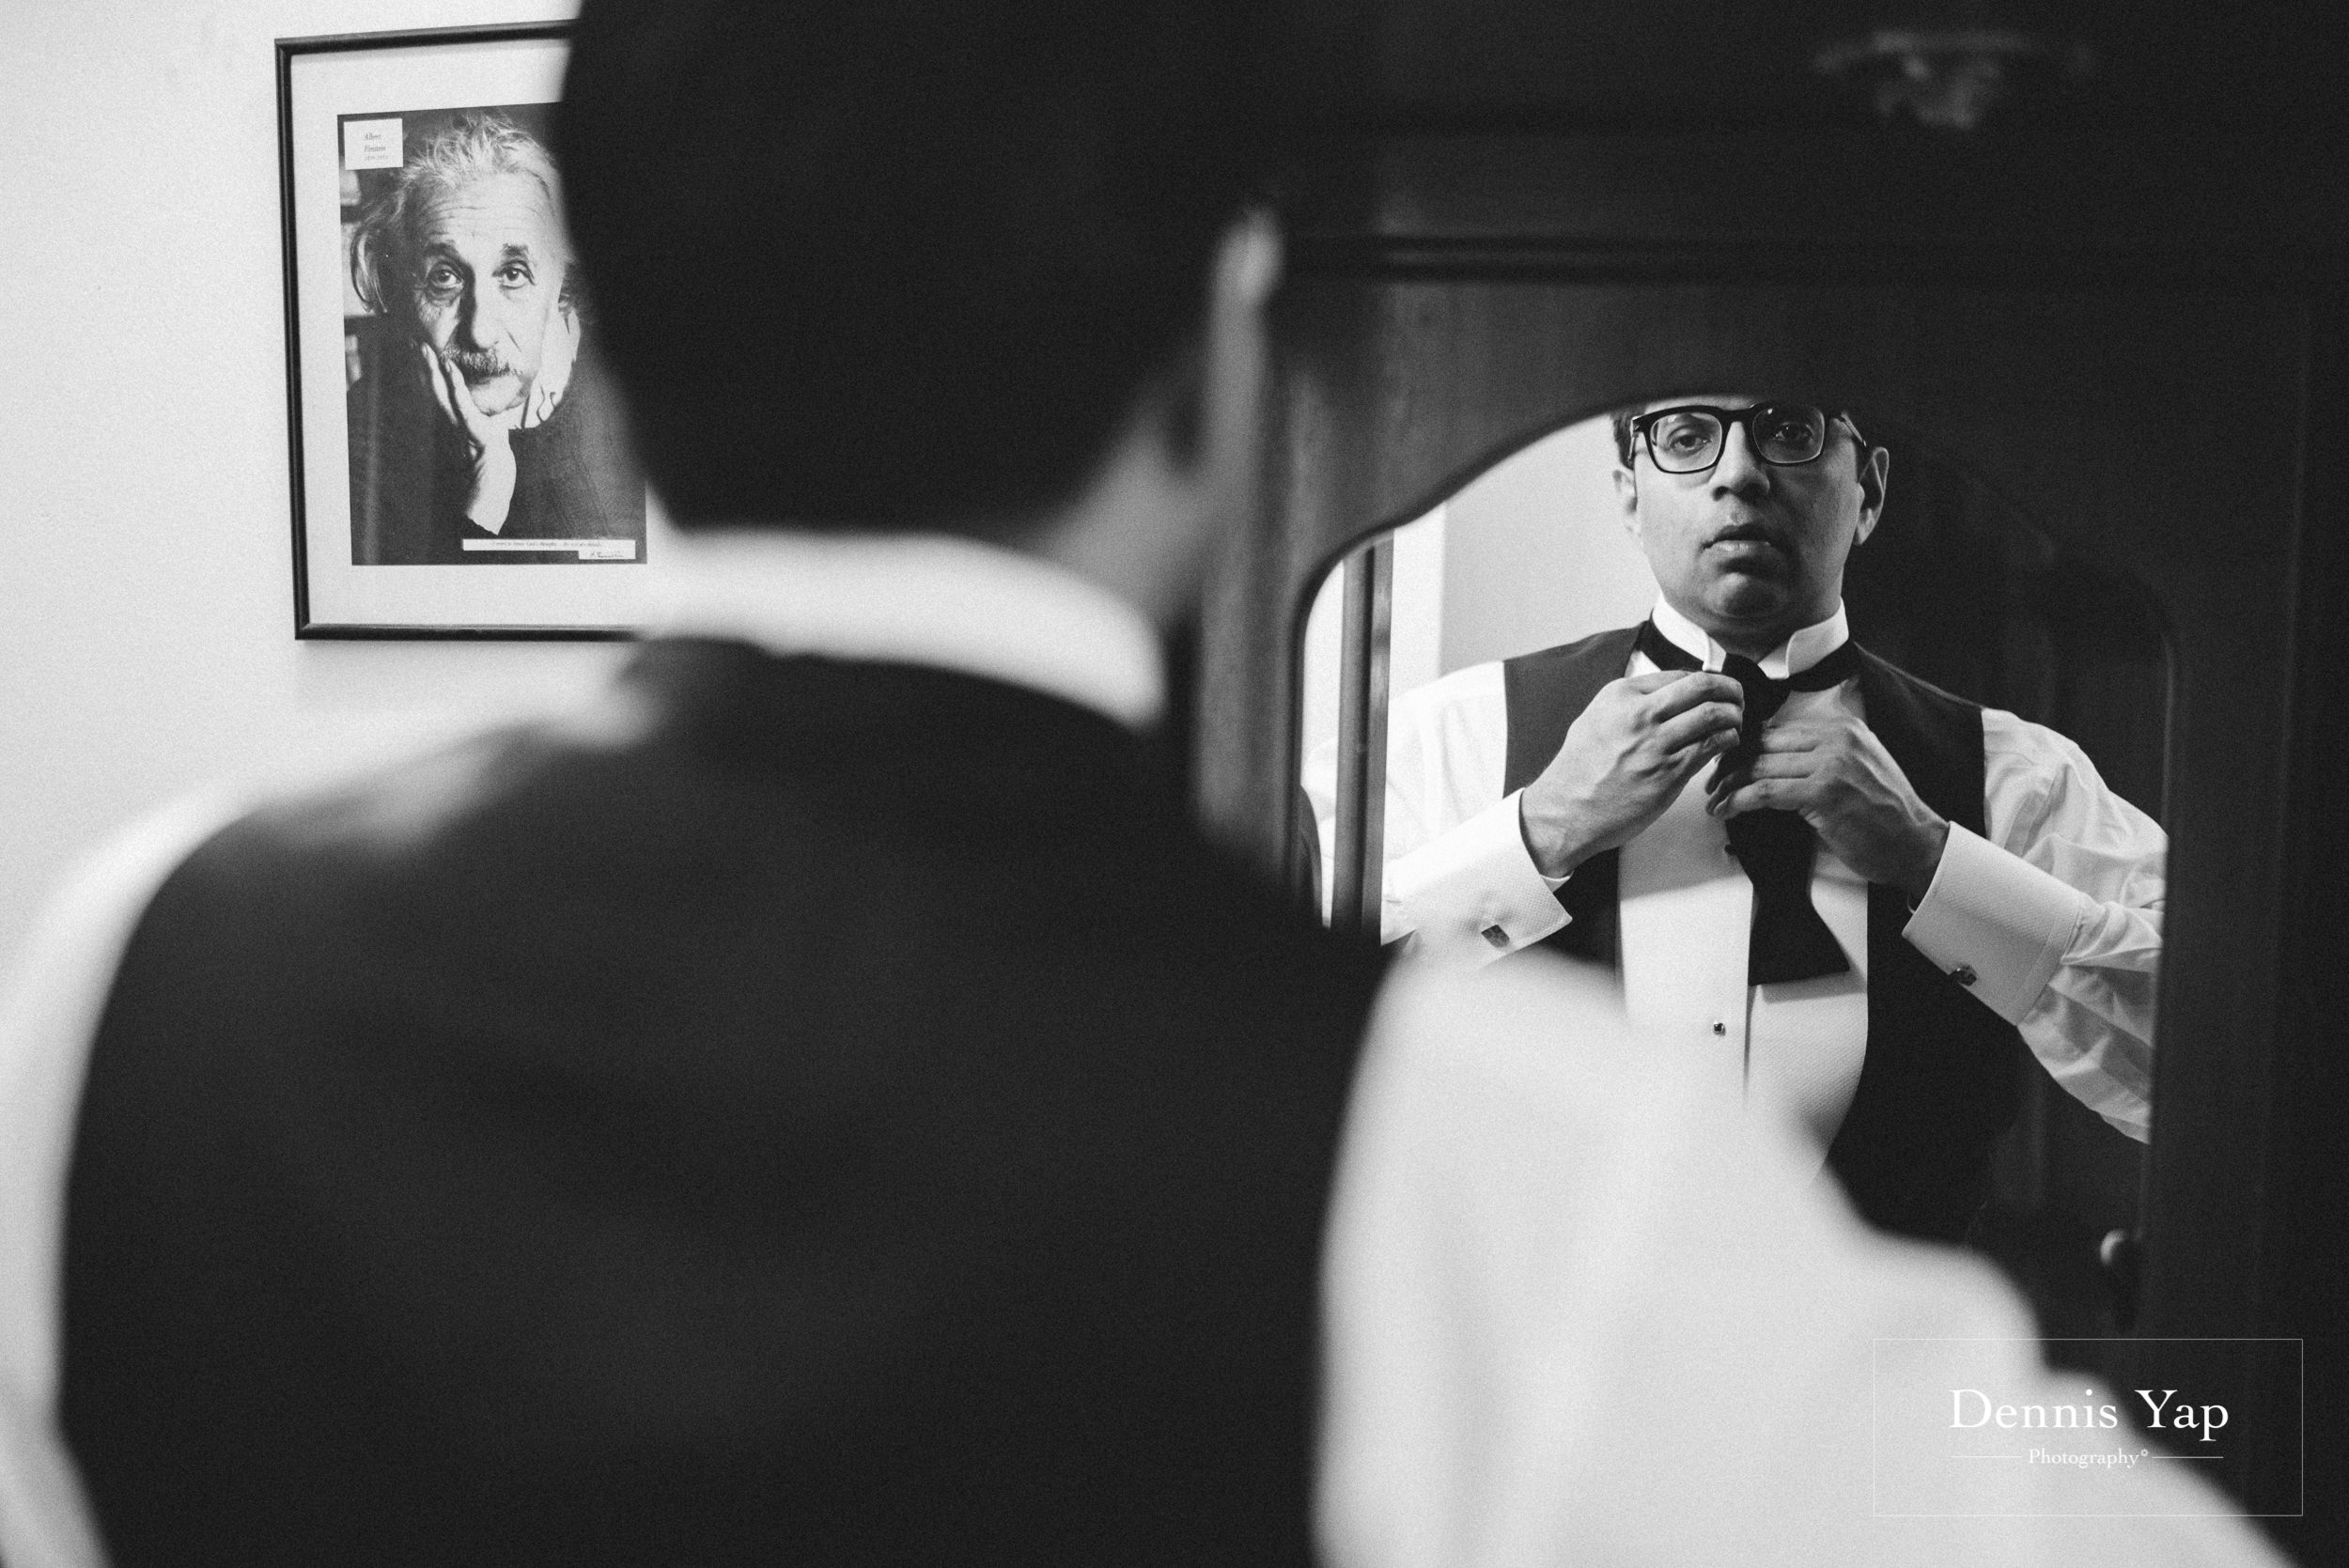 arun angela church wedding st peter bangsar dennis yap photography-3.jpg